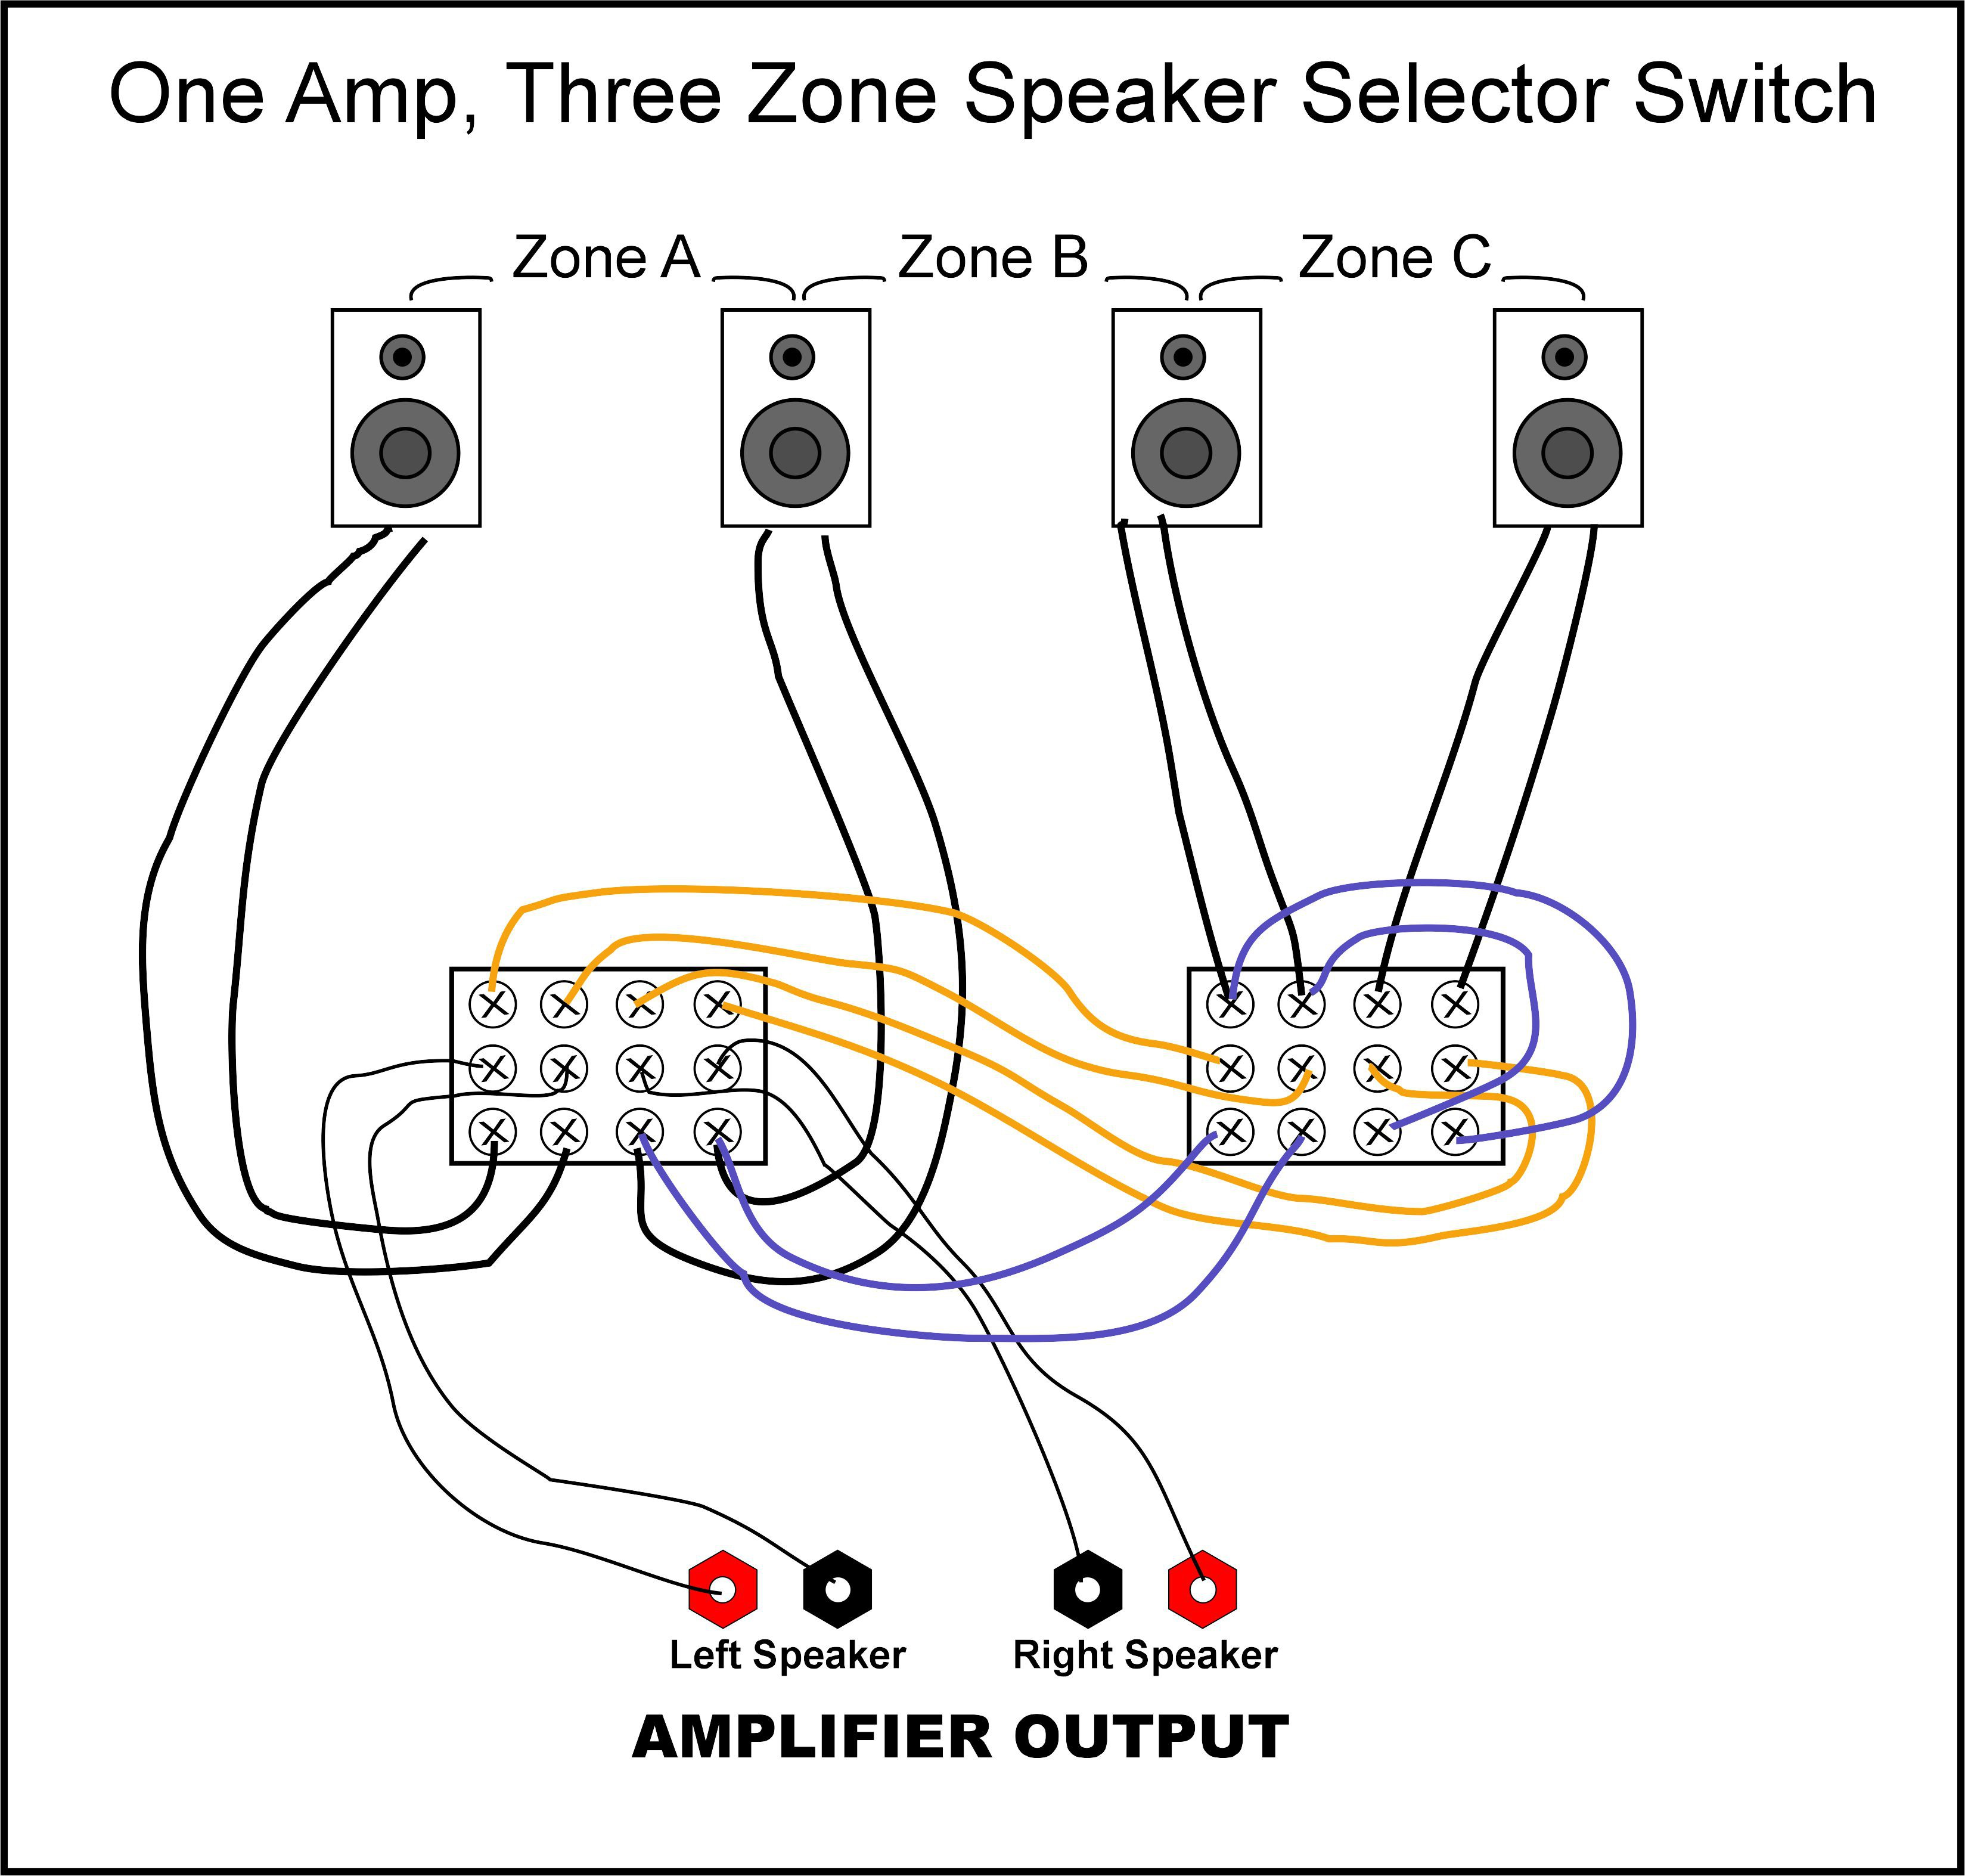 Three Zone Speaker Setup Using Four Speakers And A Selector